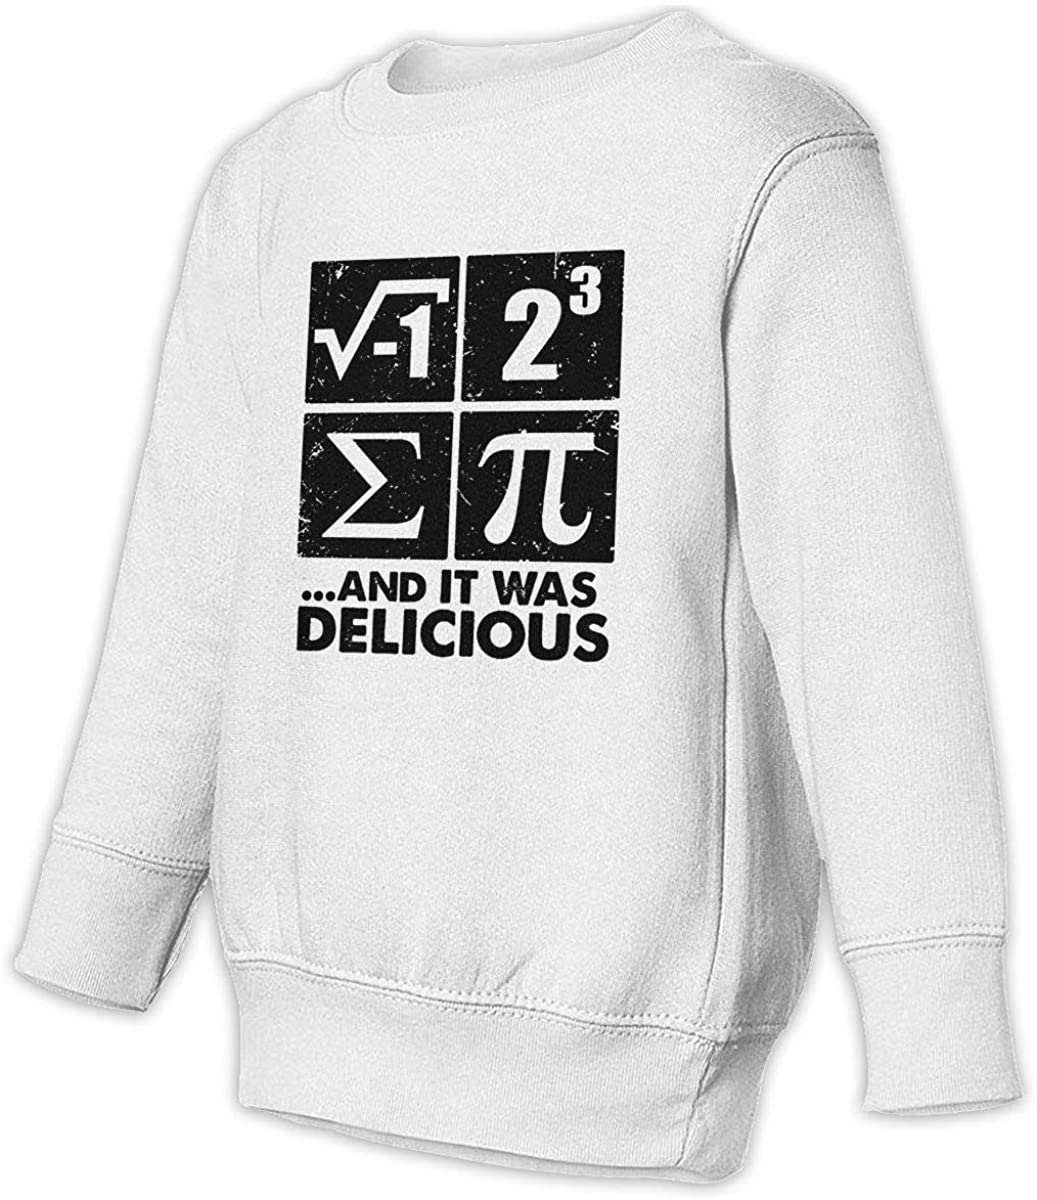 I Ate Some Pie and It was Delicious Boys Girls Pullover Sweaters Crewneck Sweatshirts Clothes for 2-6 Years Old Children